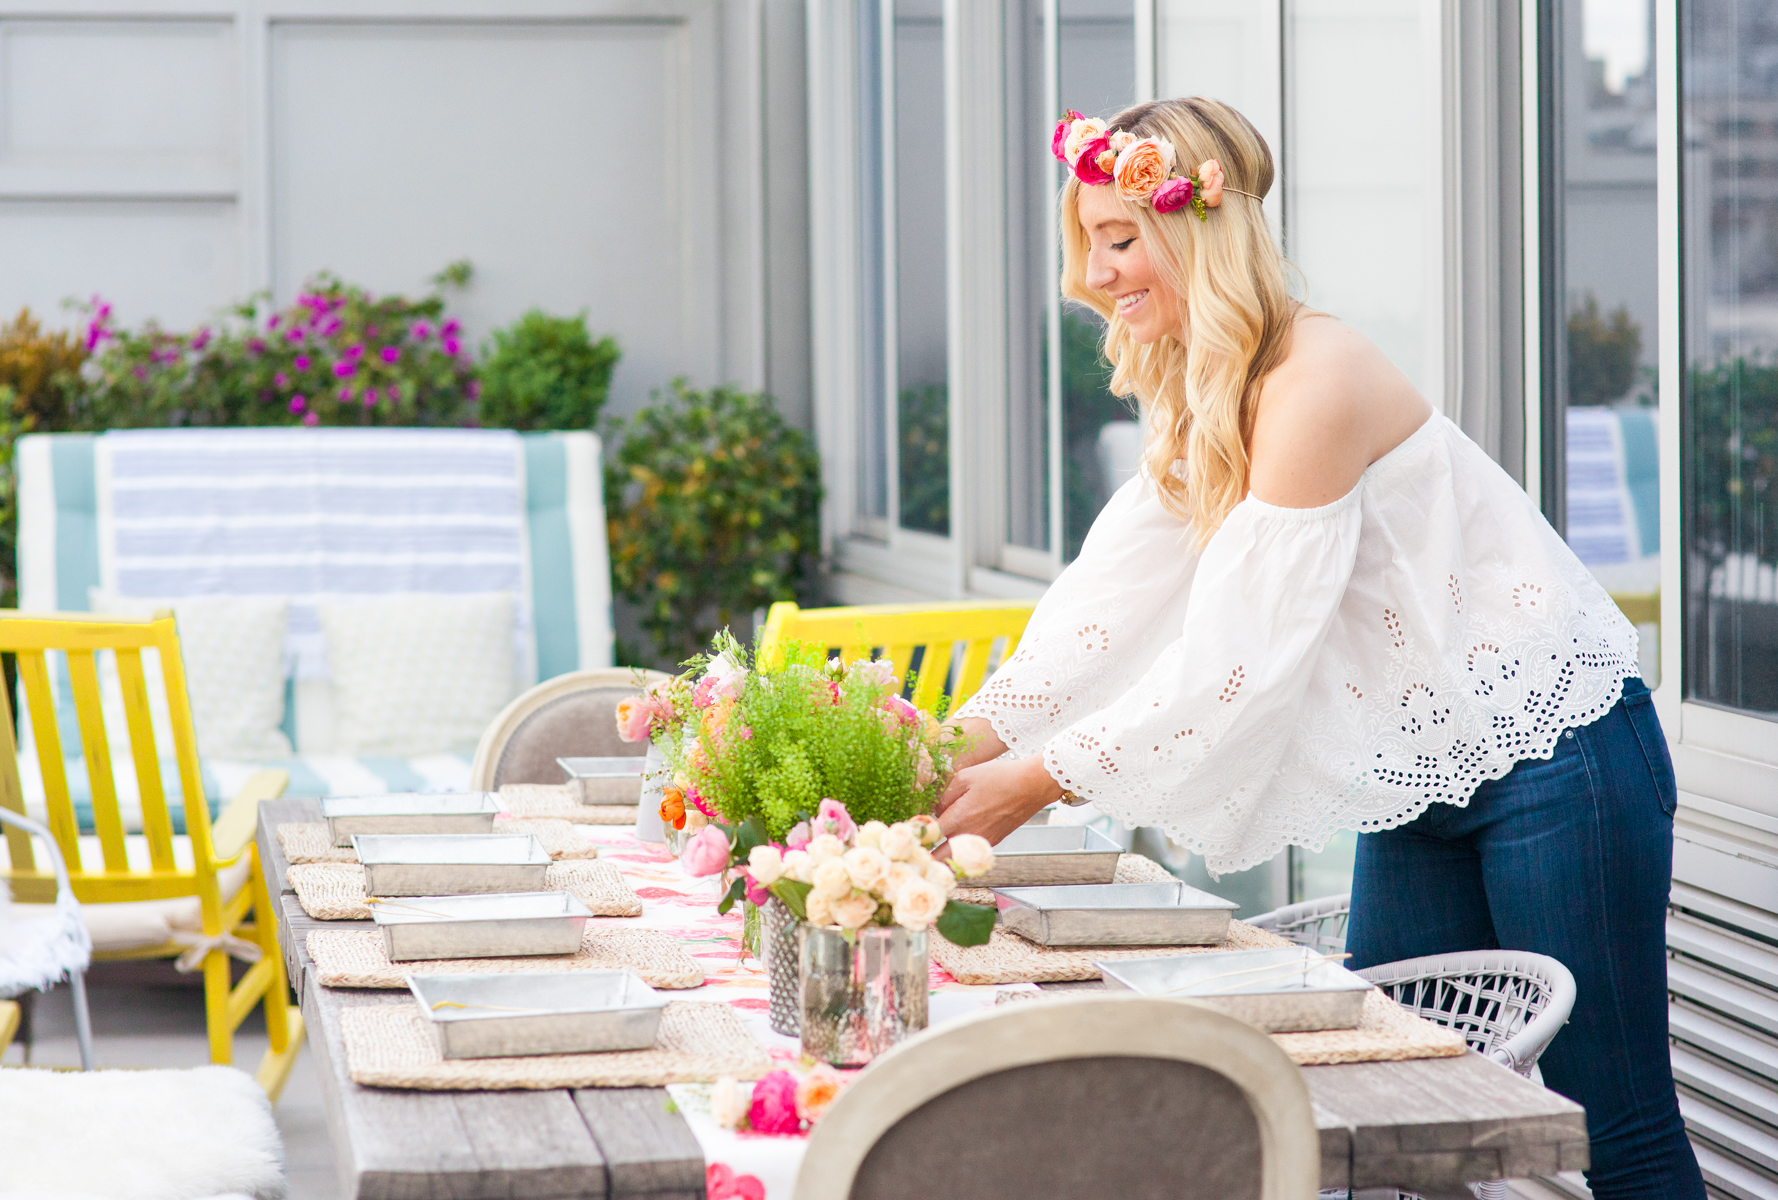 Party Ideas Outdoor Tablescape Fresh Flowers Flower Crown